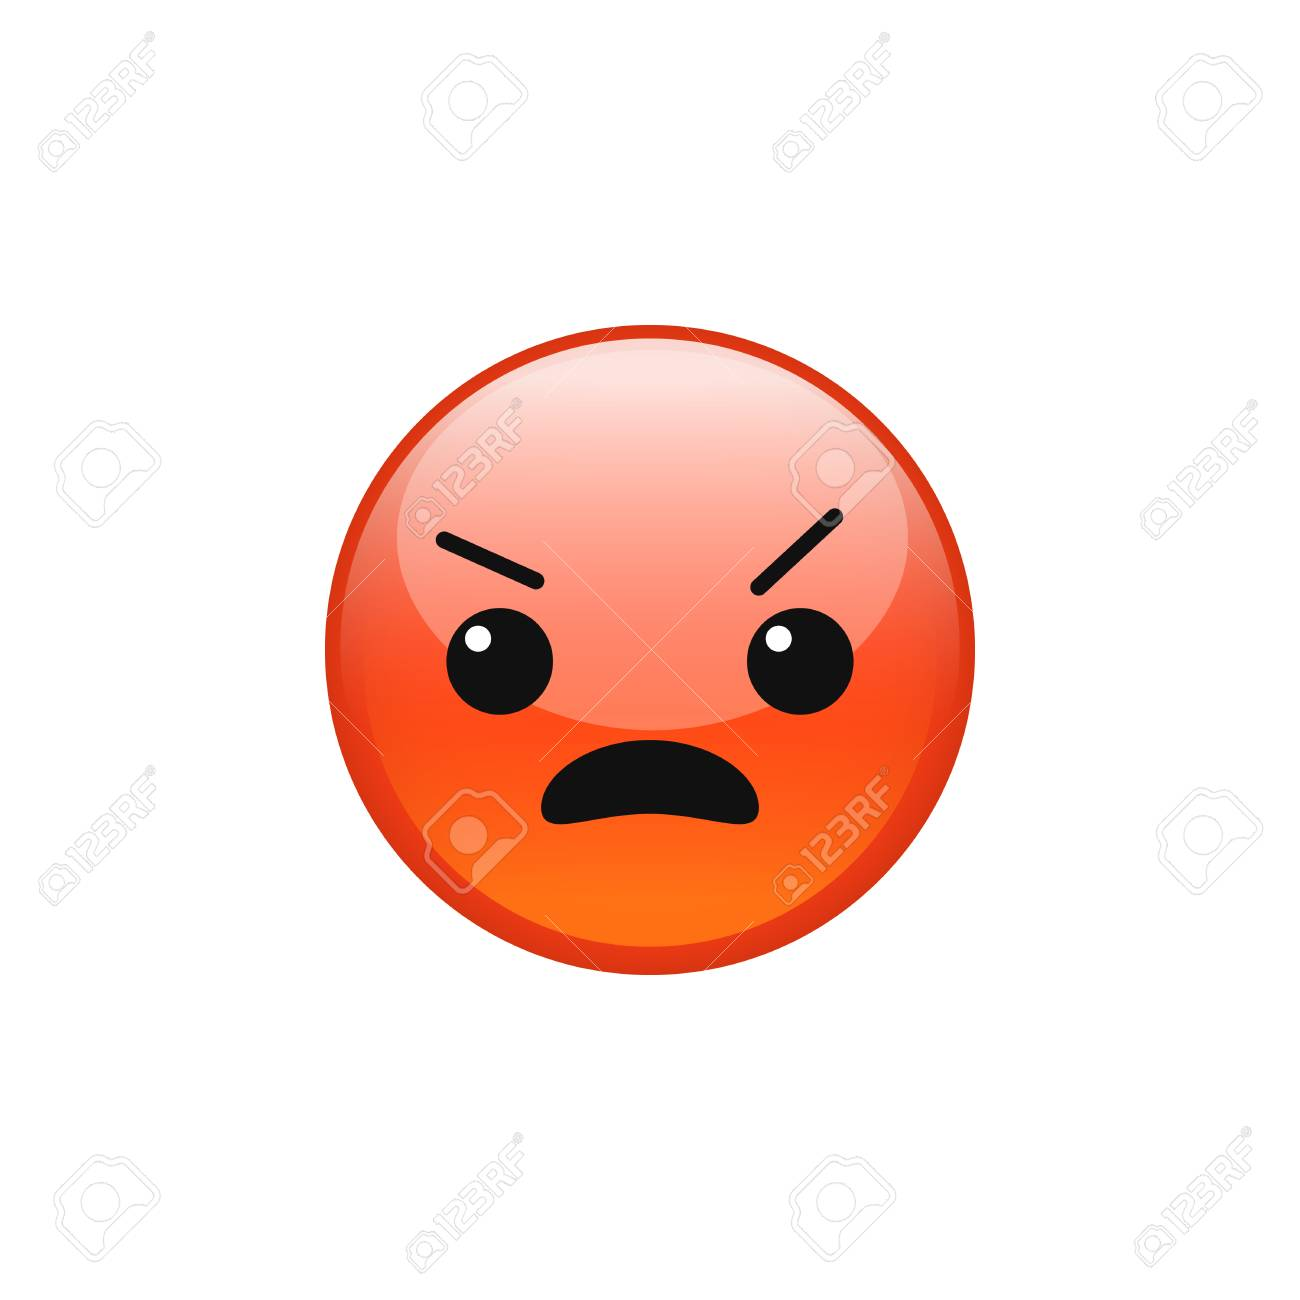 vector angry pouting grumpy mad red emoji emoticon face icon rh 123rf com mad cartoon face image mad comic face